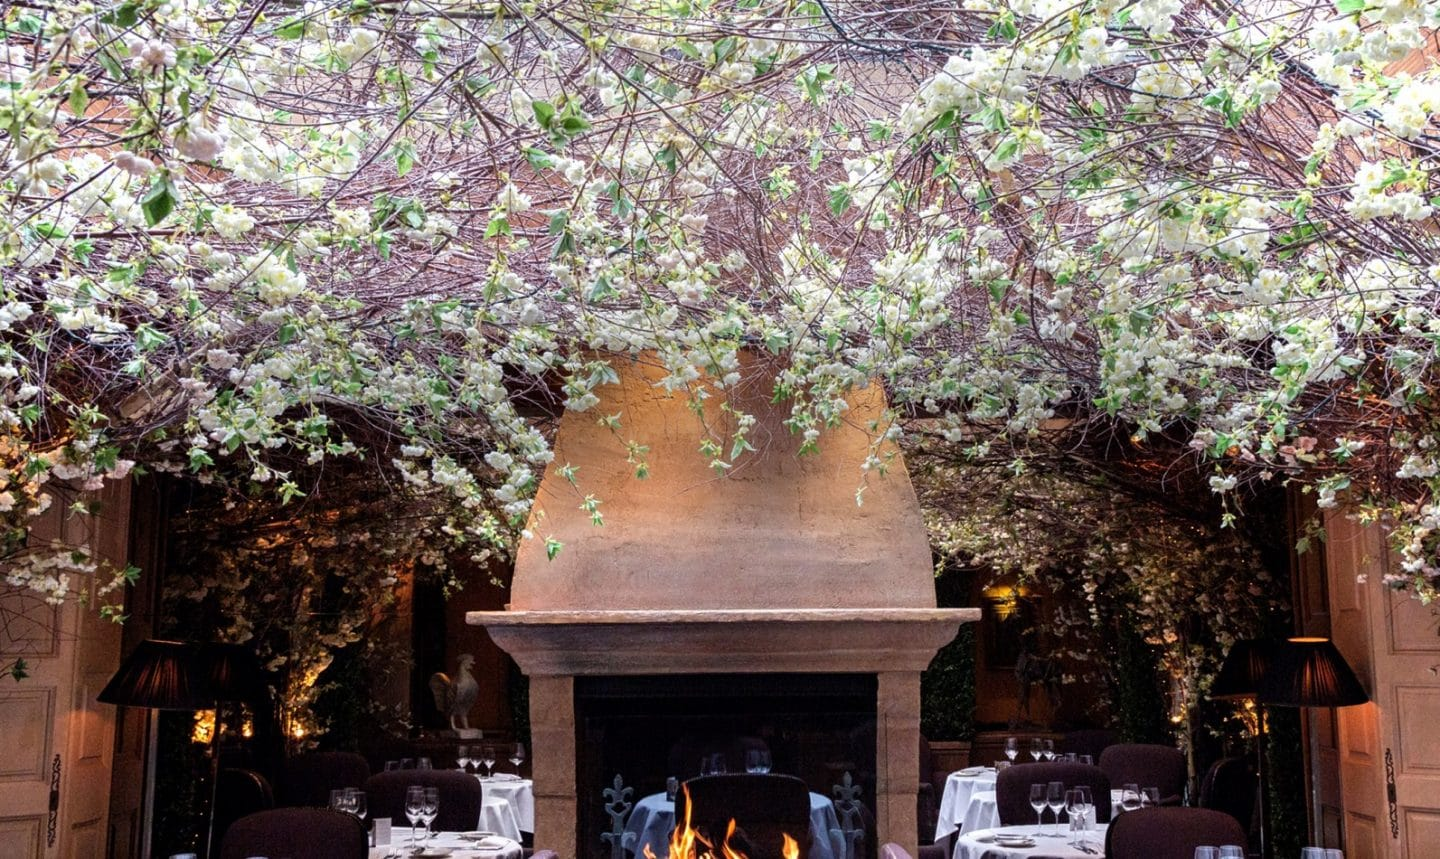 Romantic Restaurants In London 15 Spots For The Perfect Date